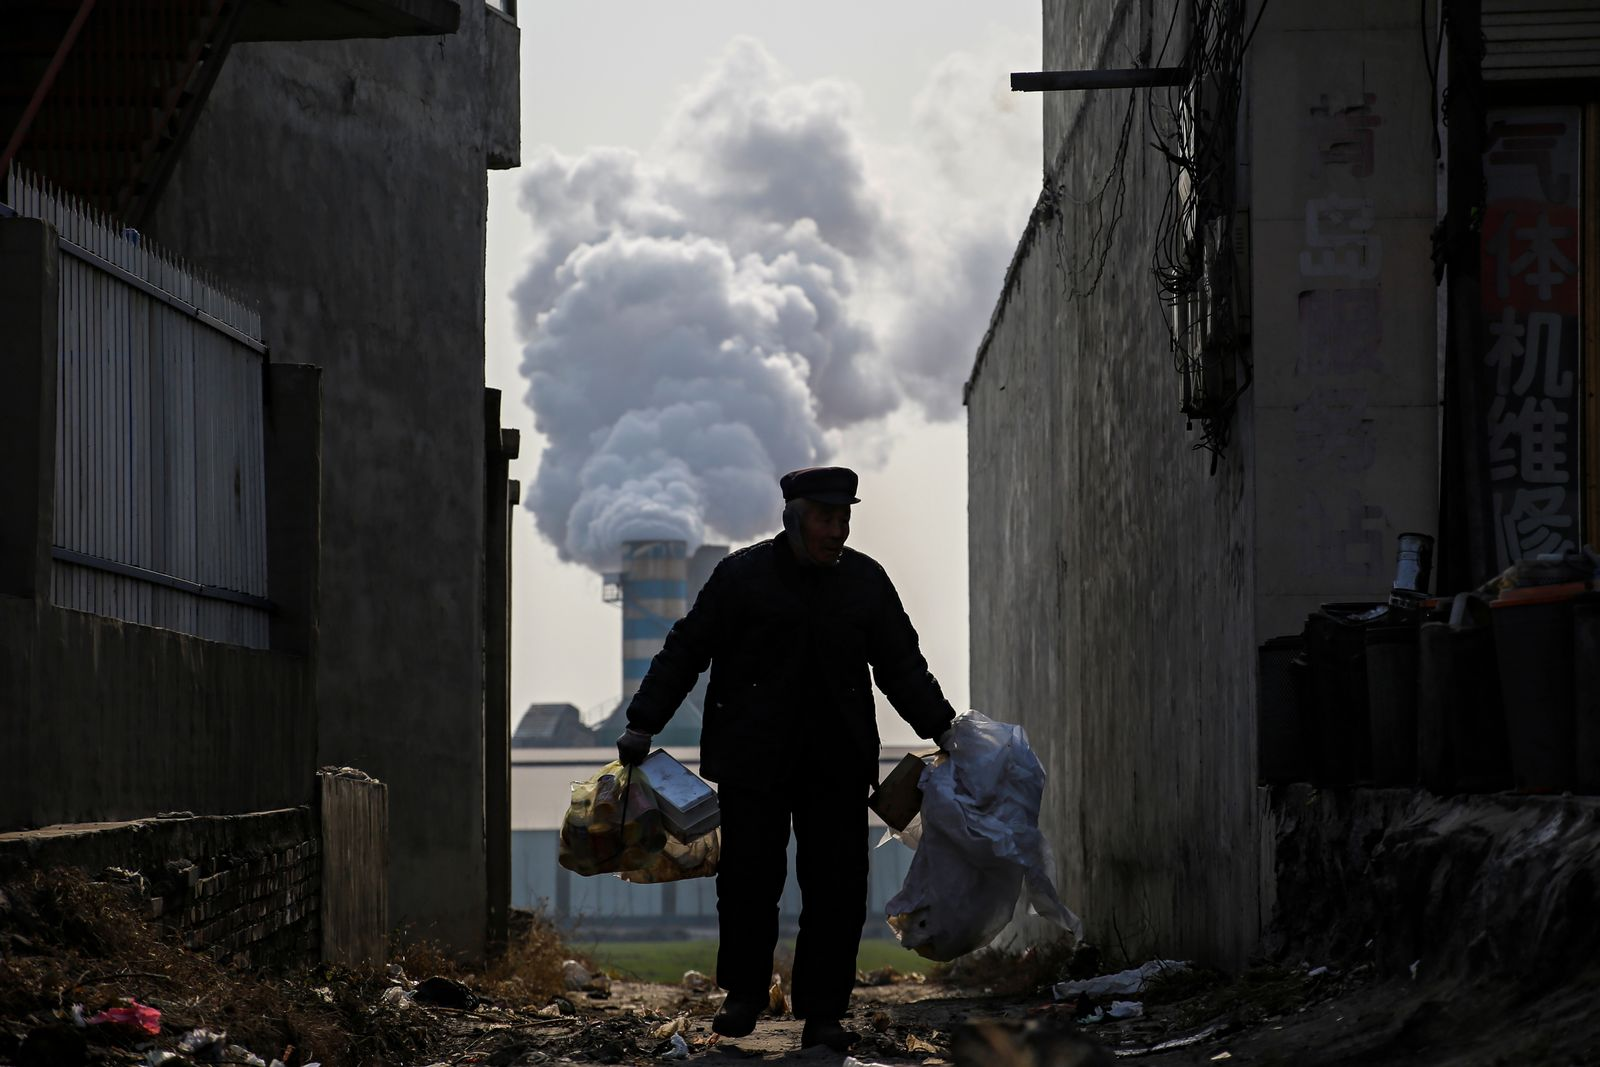 CHINA-POLLUTION/GAS